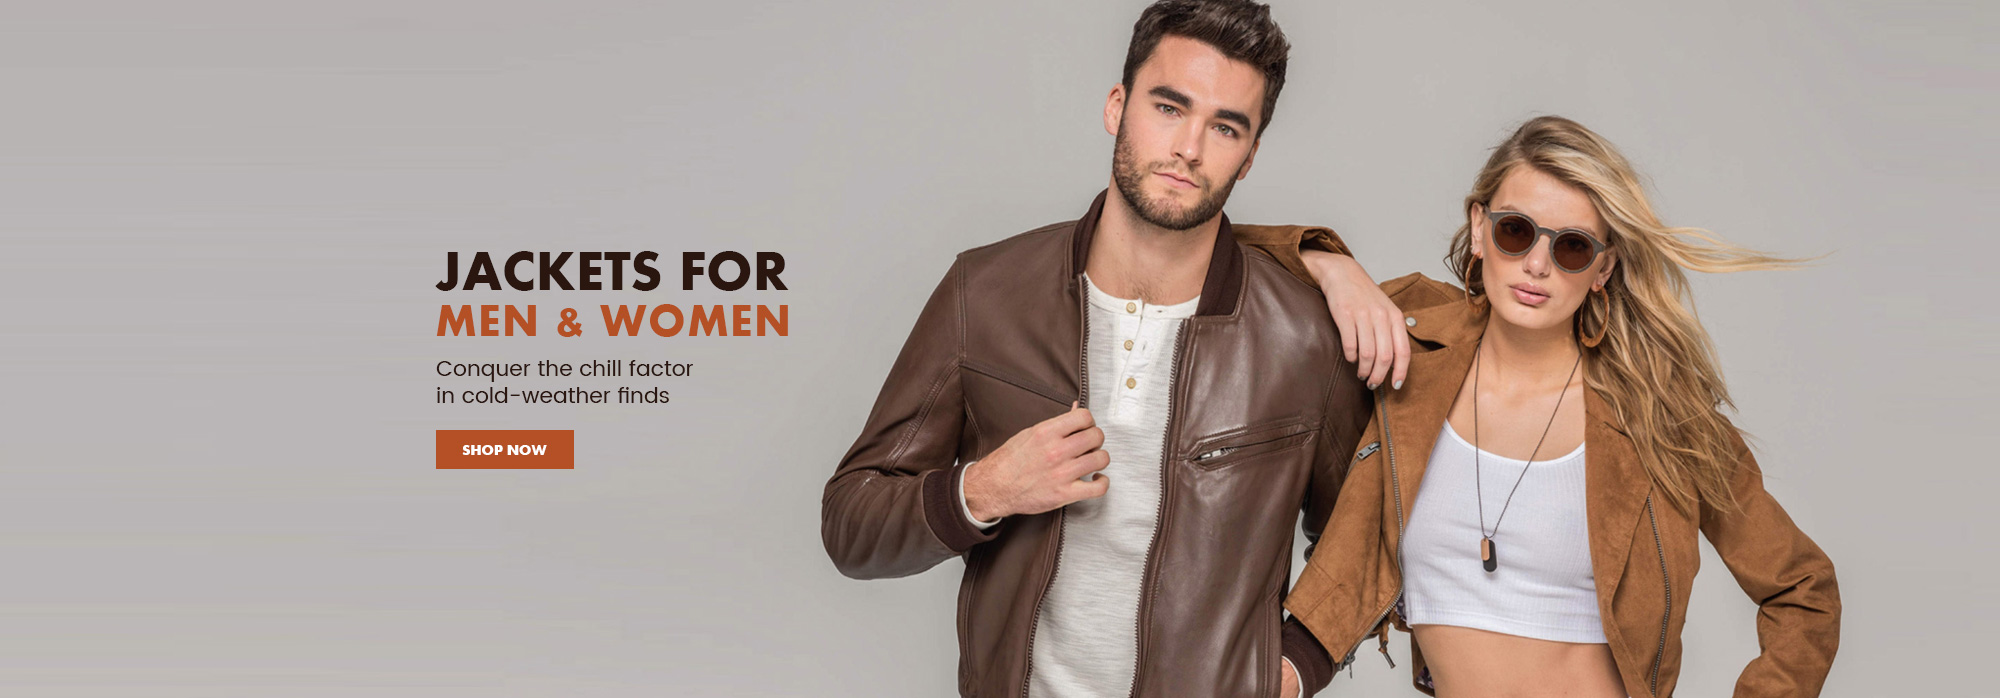 jackets-men-women.jpg